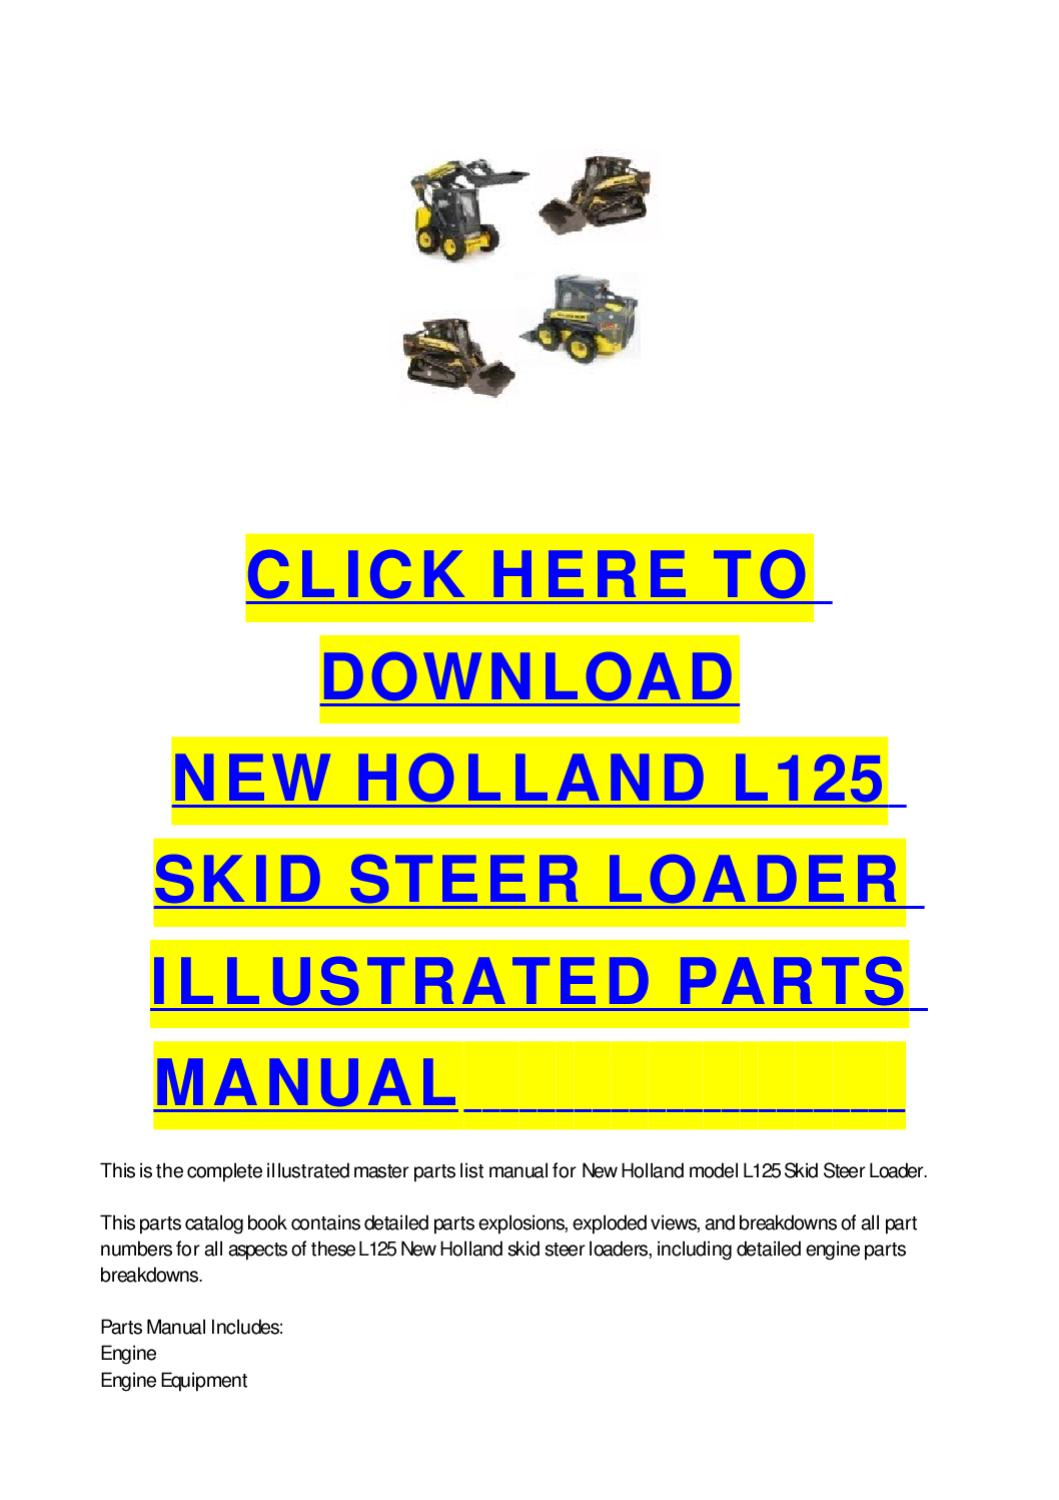 New Holland Skid Steer Parts Diagram New Holland L125 Skid Steer Loader Illustrated Parts Manual Cycle